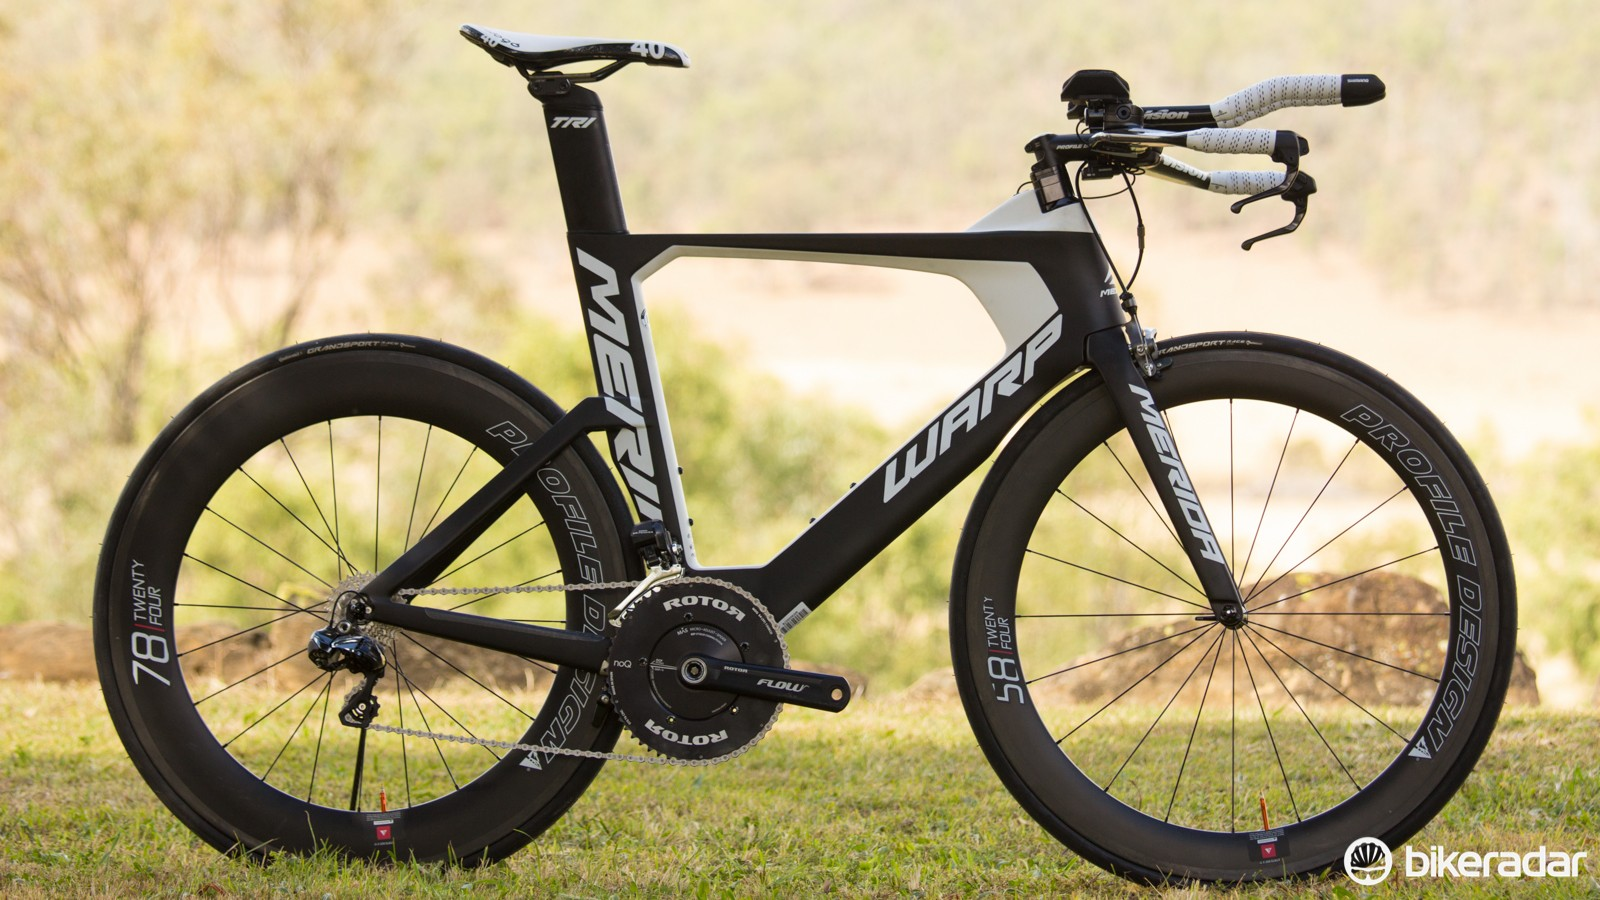 The 2015 Merida Warp Tri 7000-E (AU$6,999 / UK£TBC). At the entry level and sharing the same frame, there's the Warp Tri 3000 (AU$2,999 / UK£TBC) with Shimano Ultegra/105 gearing